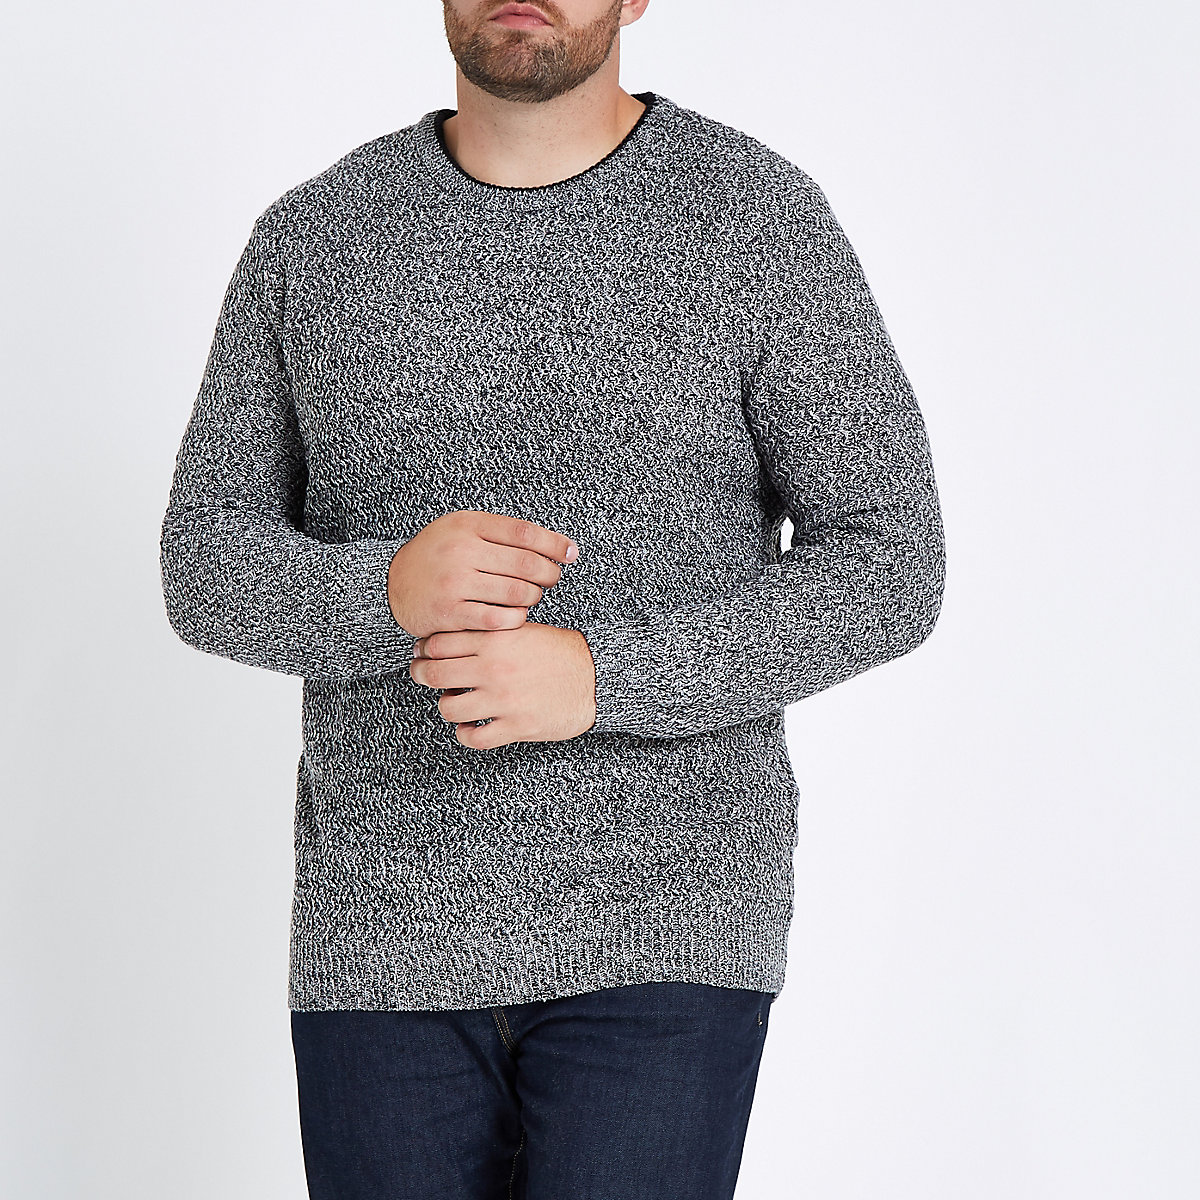 Big and Tall – Grauer Slim Fit Pullover mit Struktur